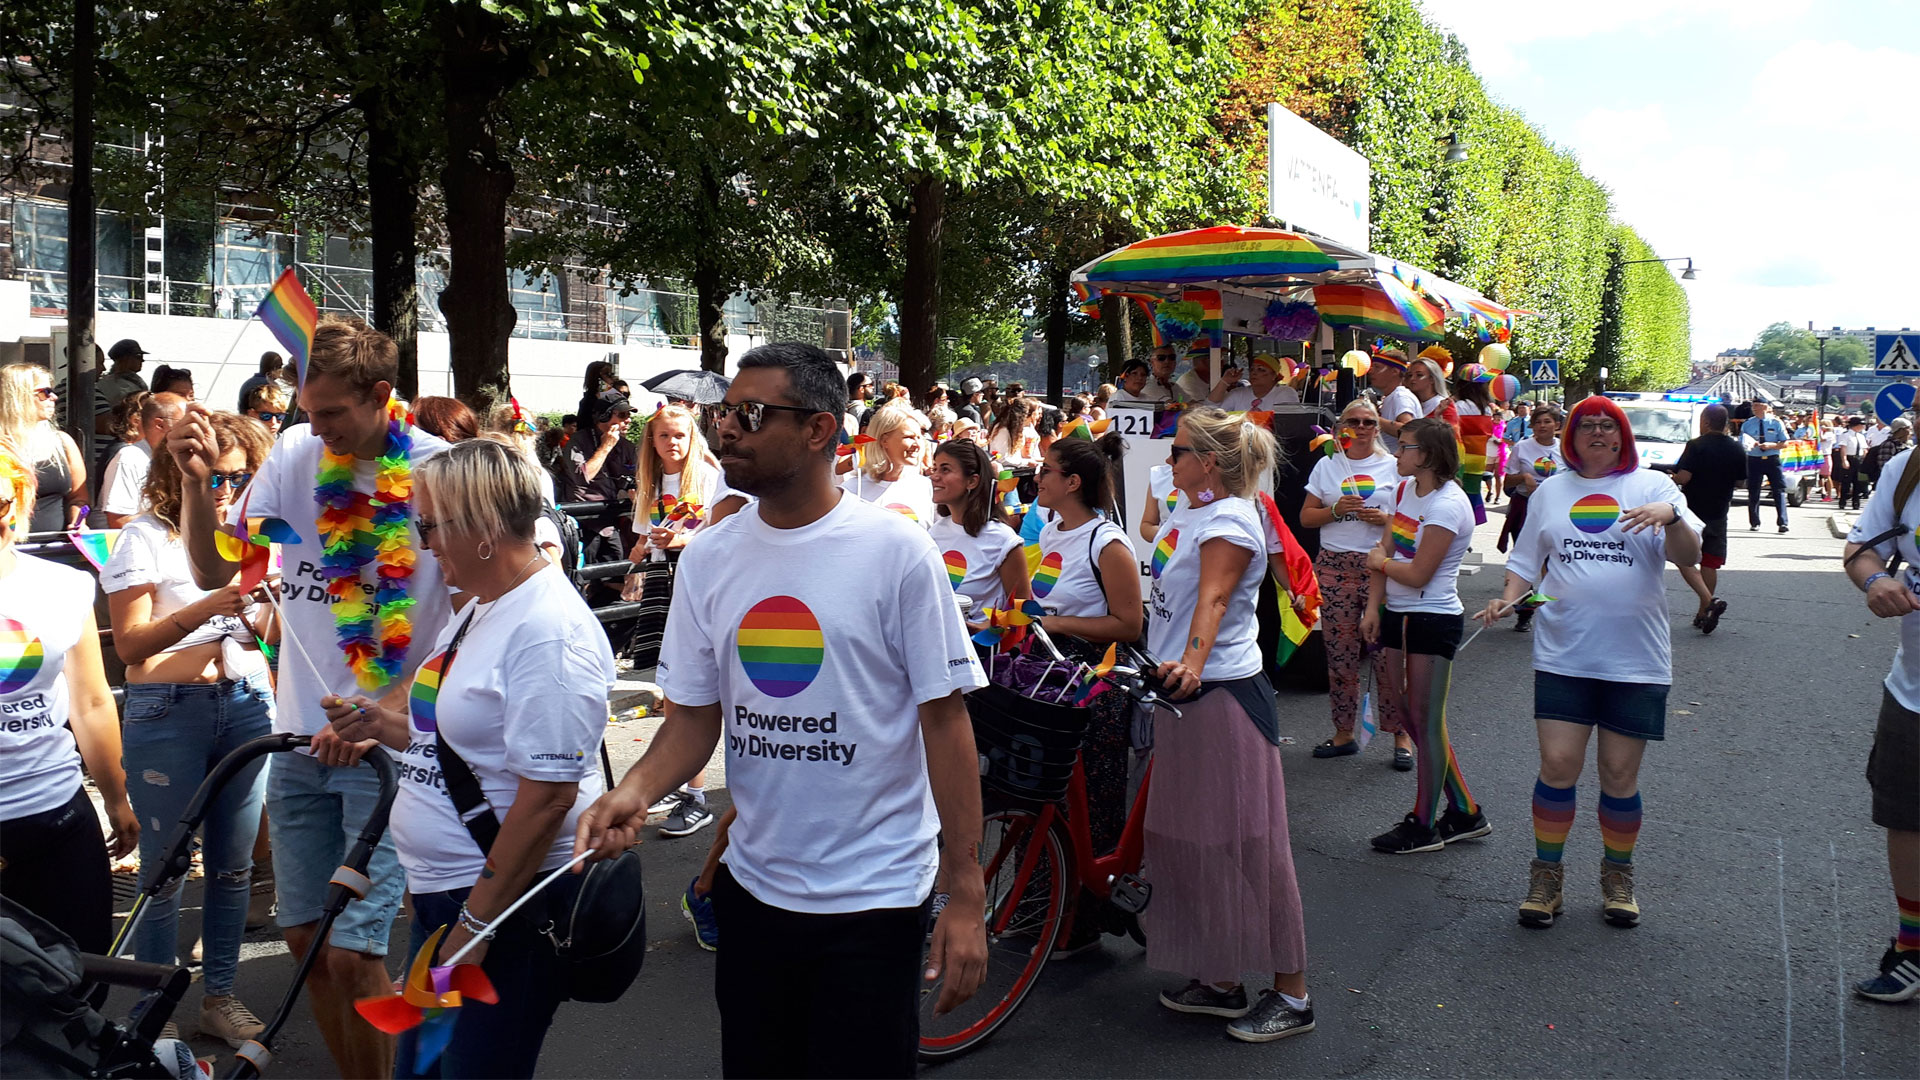 The Pride parade in Stockholm